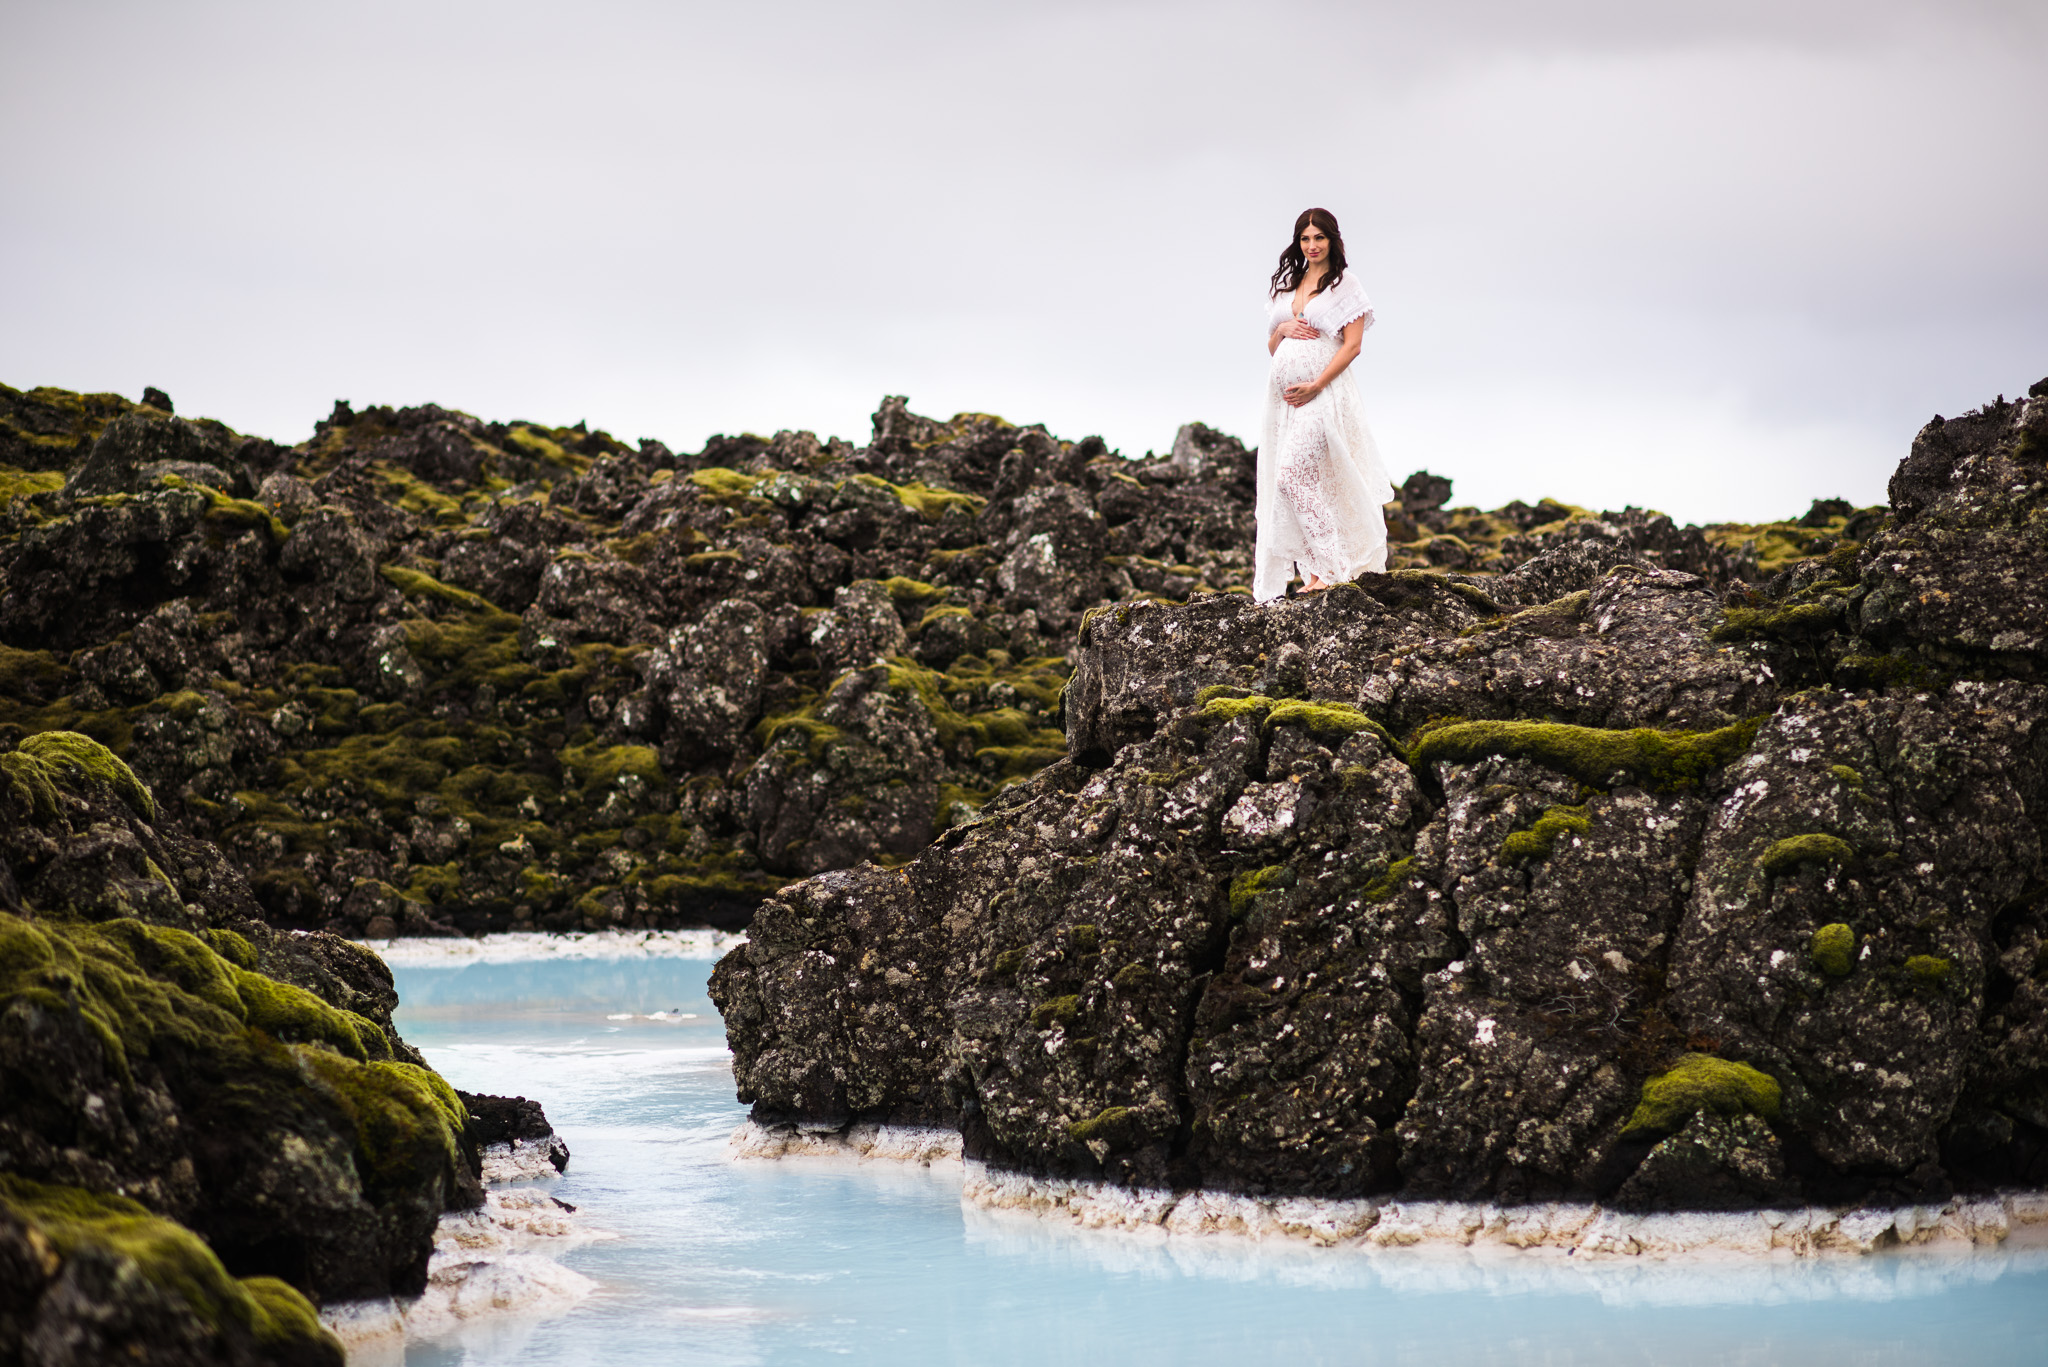 victoria-wedding-photographers-iceland-maternity-photos-23.jpg